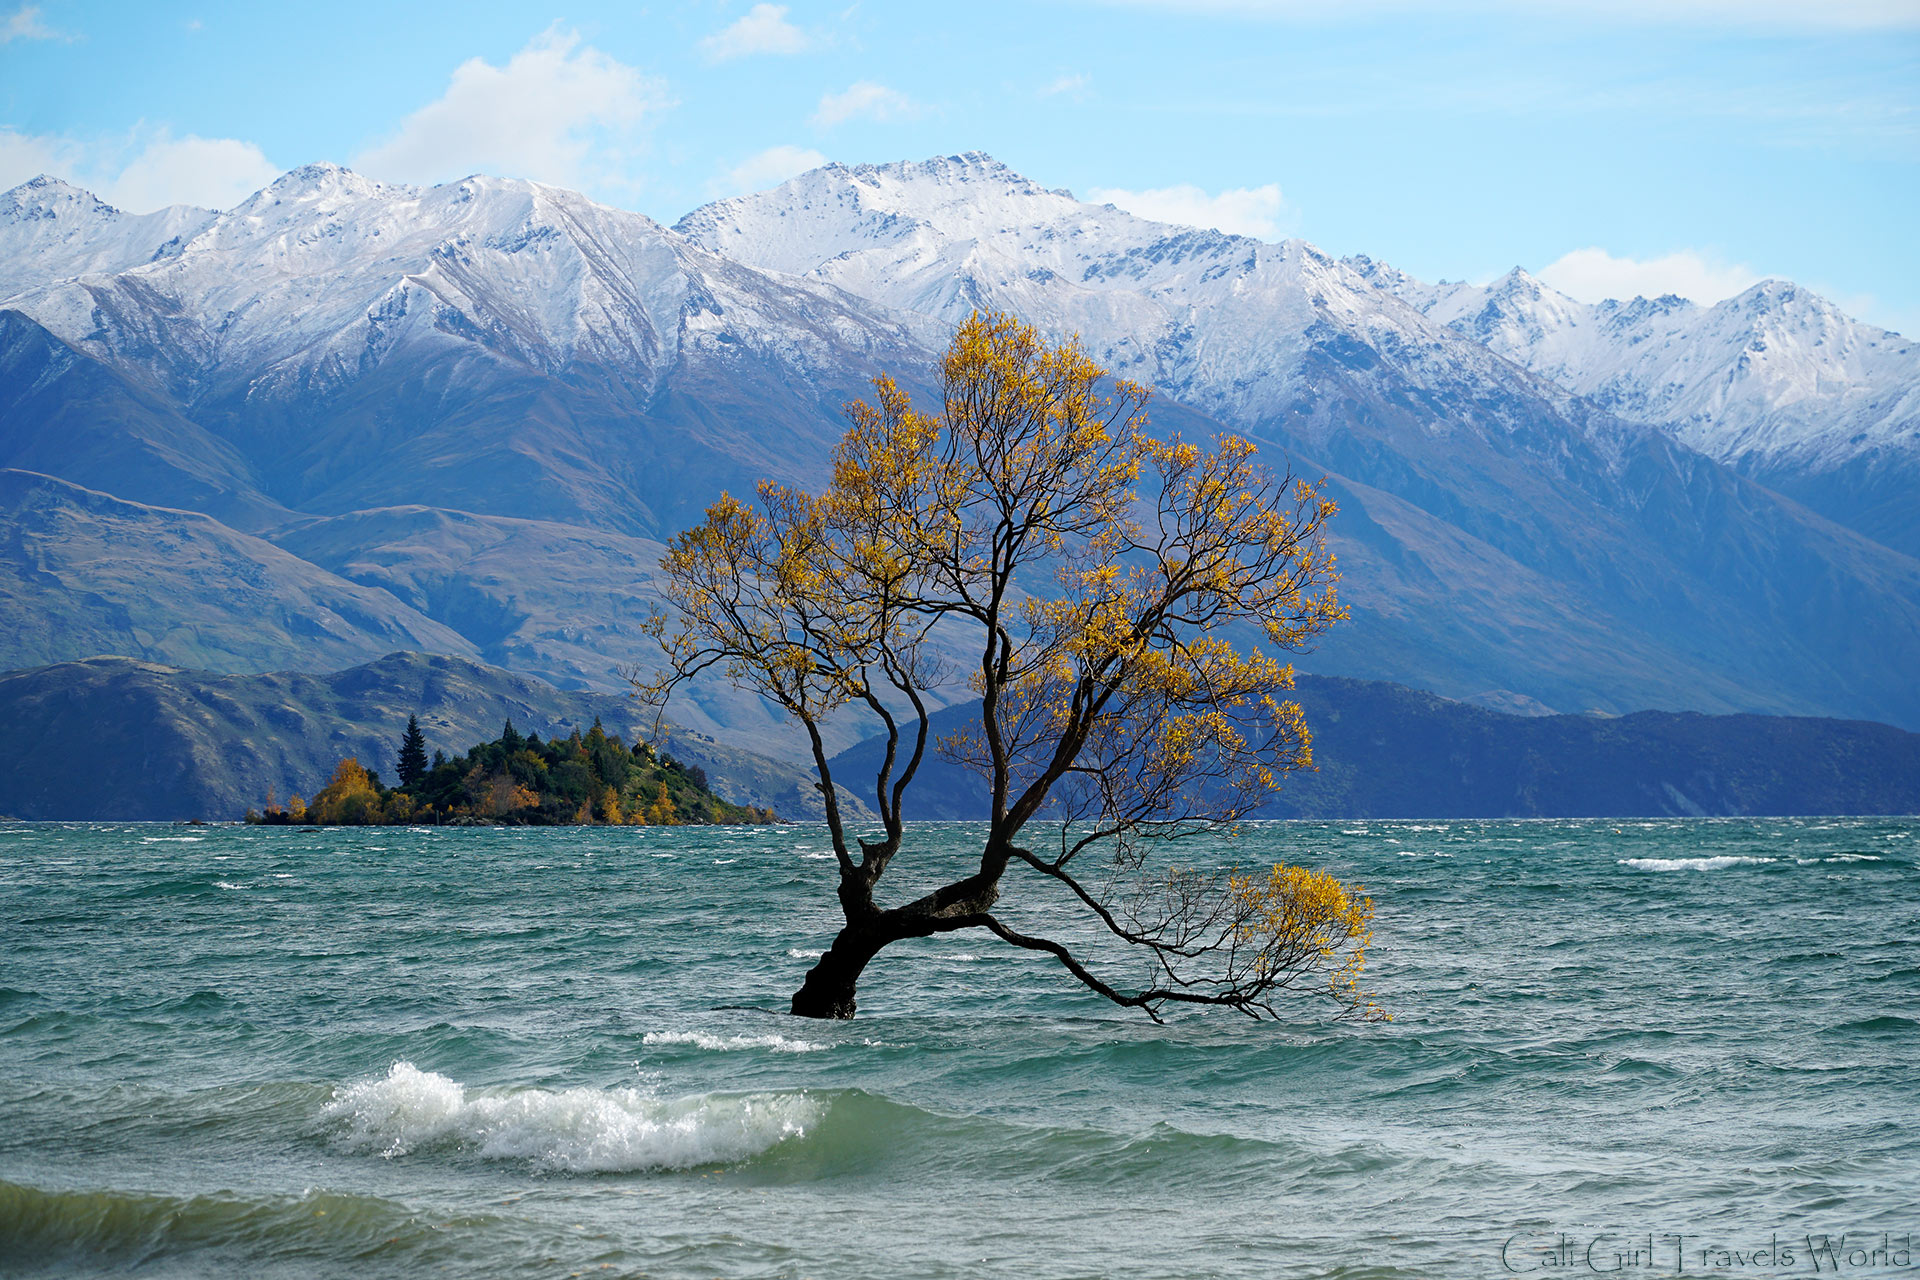 Enjoying a beautiful day in Wanaka in Fall. at the Wanaka Tree